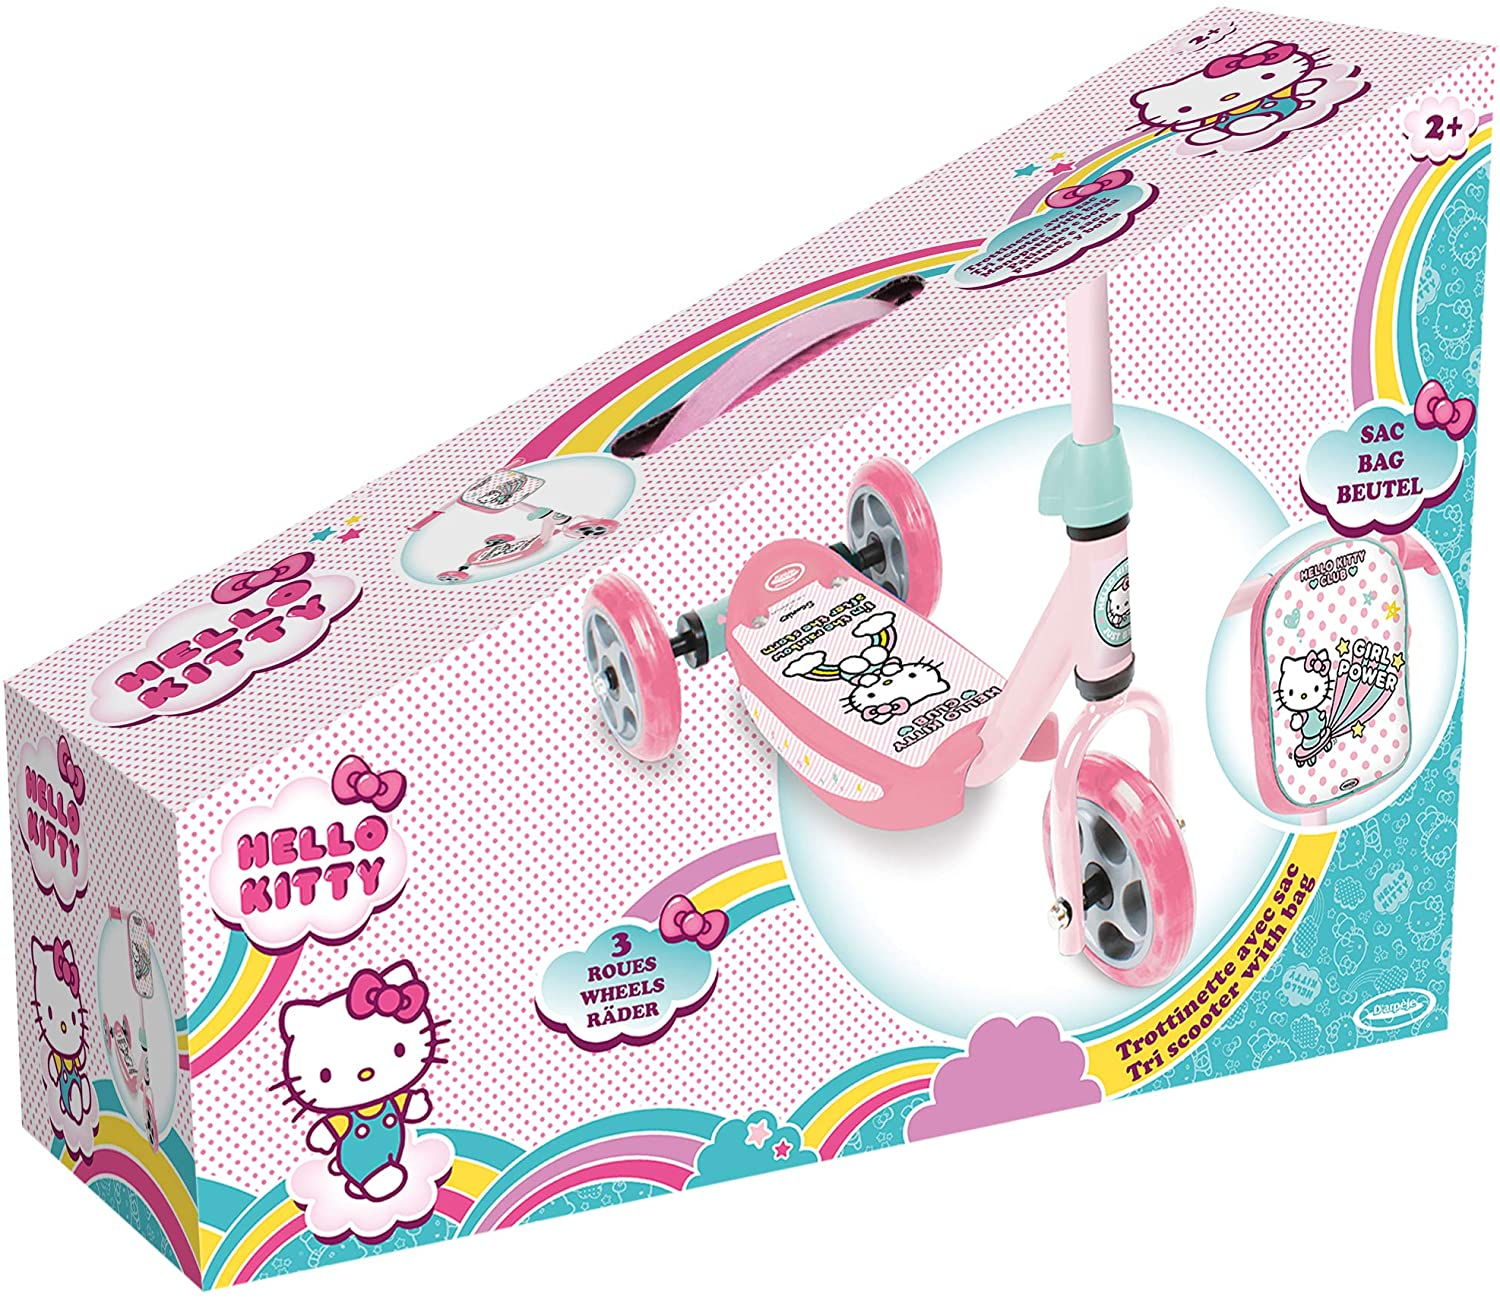 HELLO KITTY PATINETE 3 RUEDAS OHKY113-2 - N27420